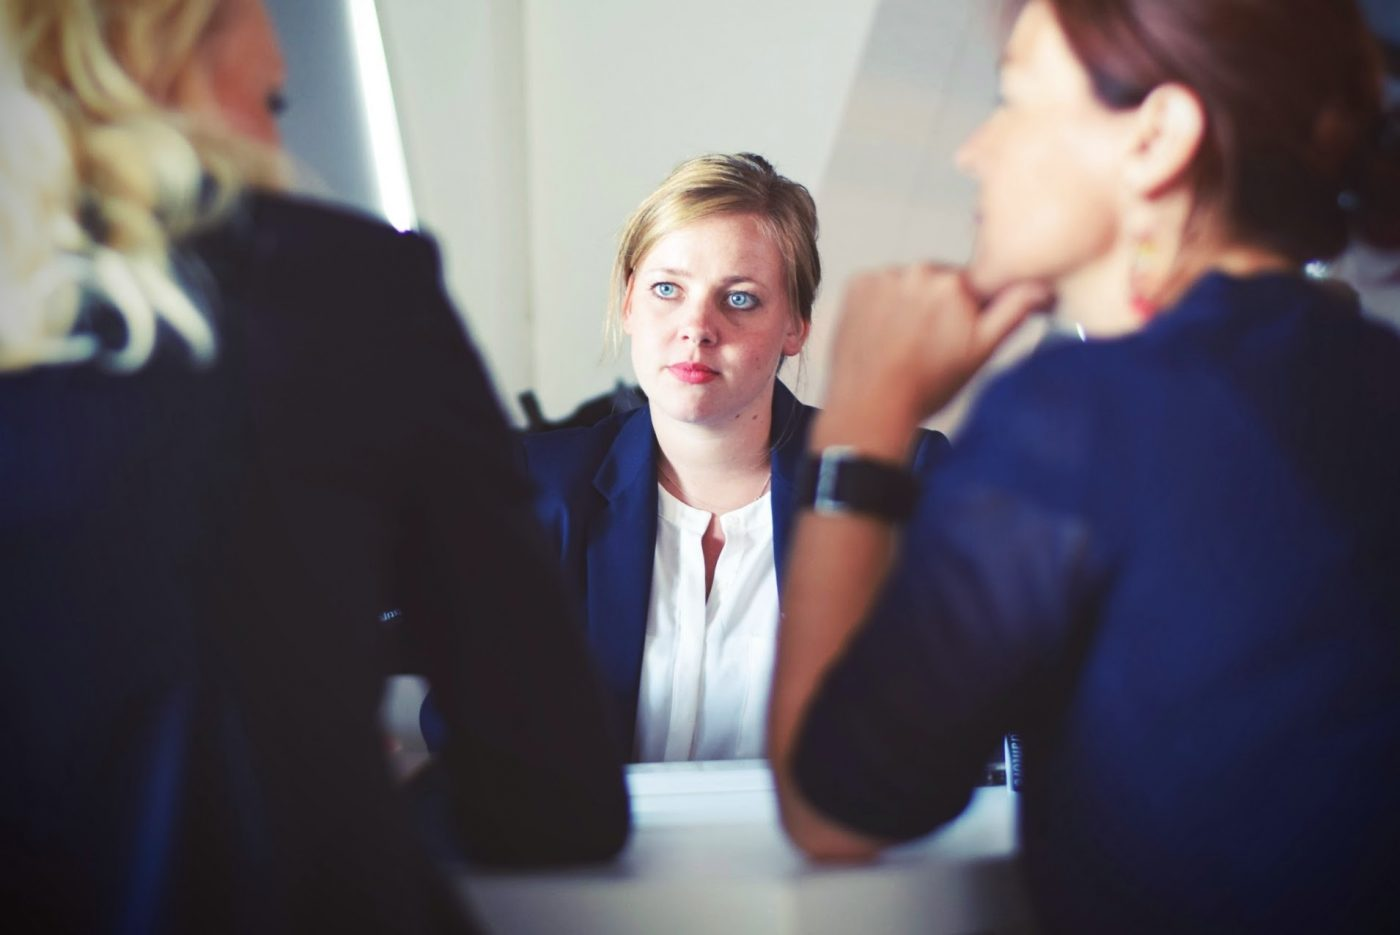 Woman leader: Here's why women's leadership is important in our world